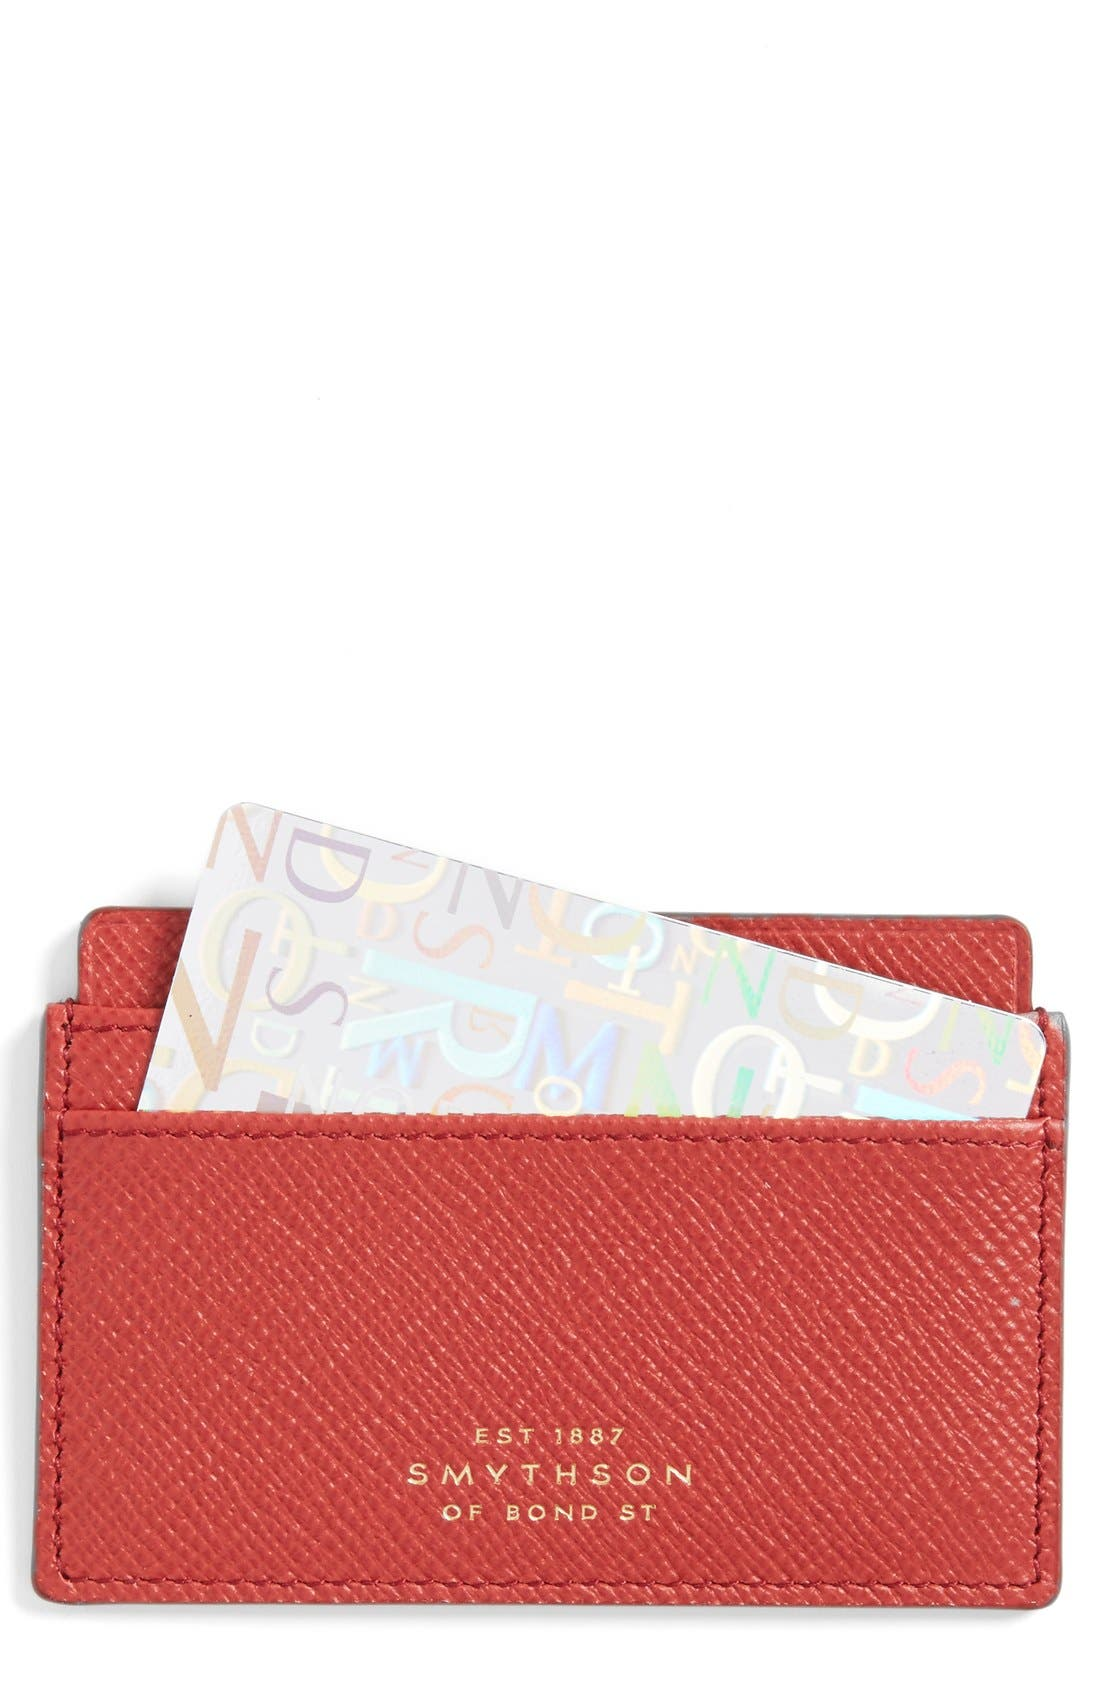 'Panama' Leather Card Case,                             Main thumbnail 1, color,                             Red